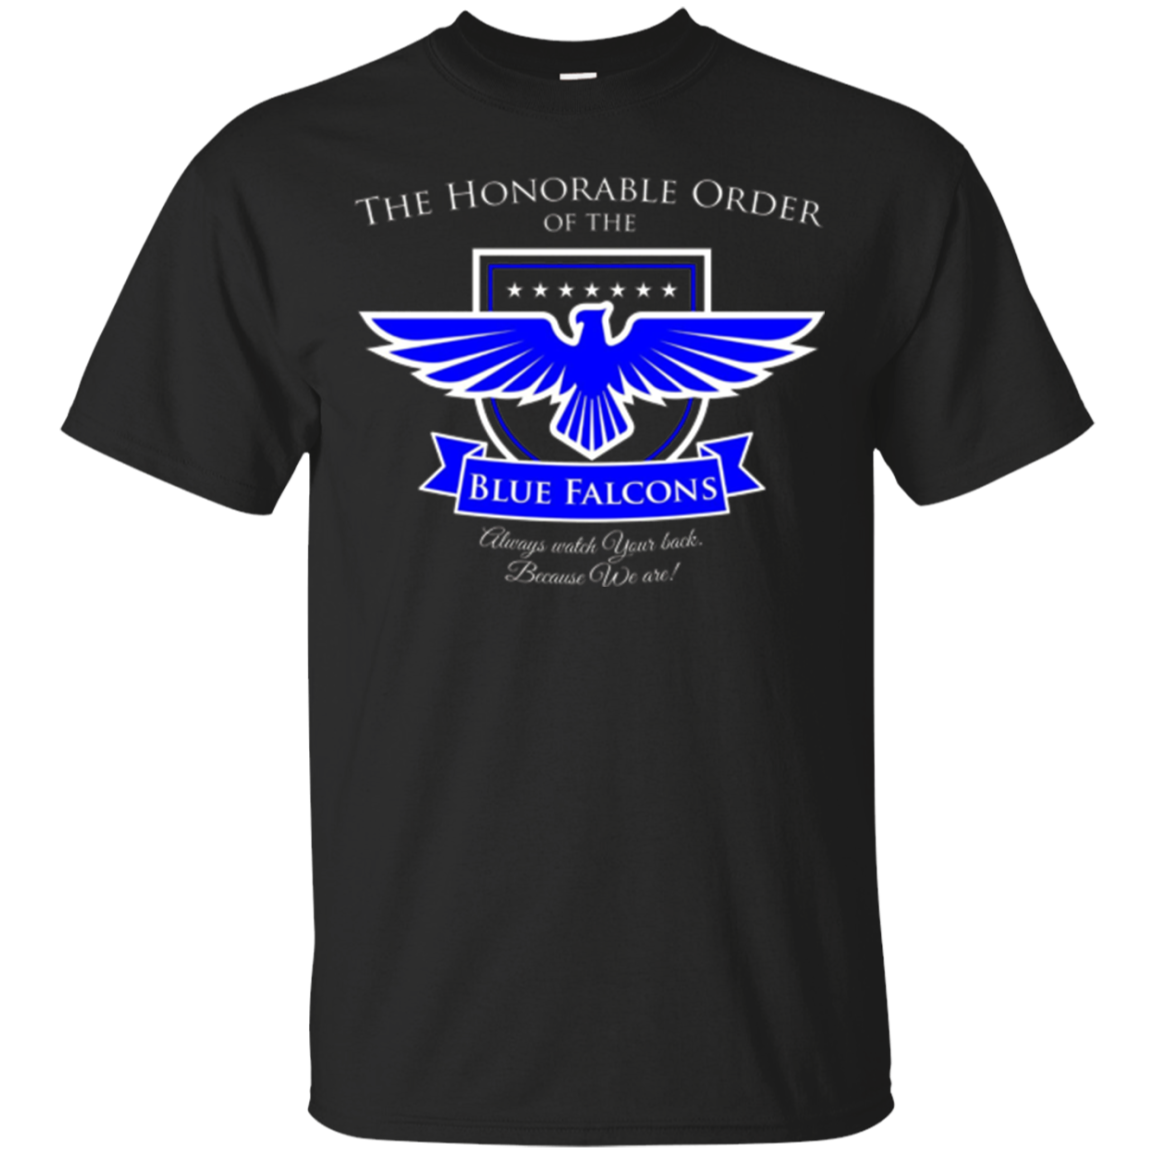 The Honorable Order Of The Blue Falcons T-shirt